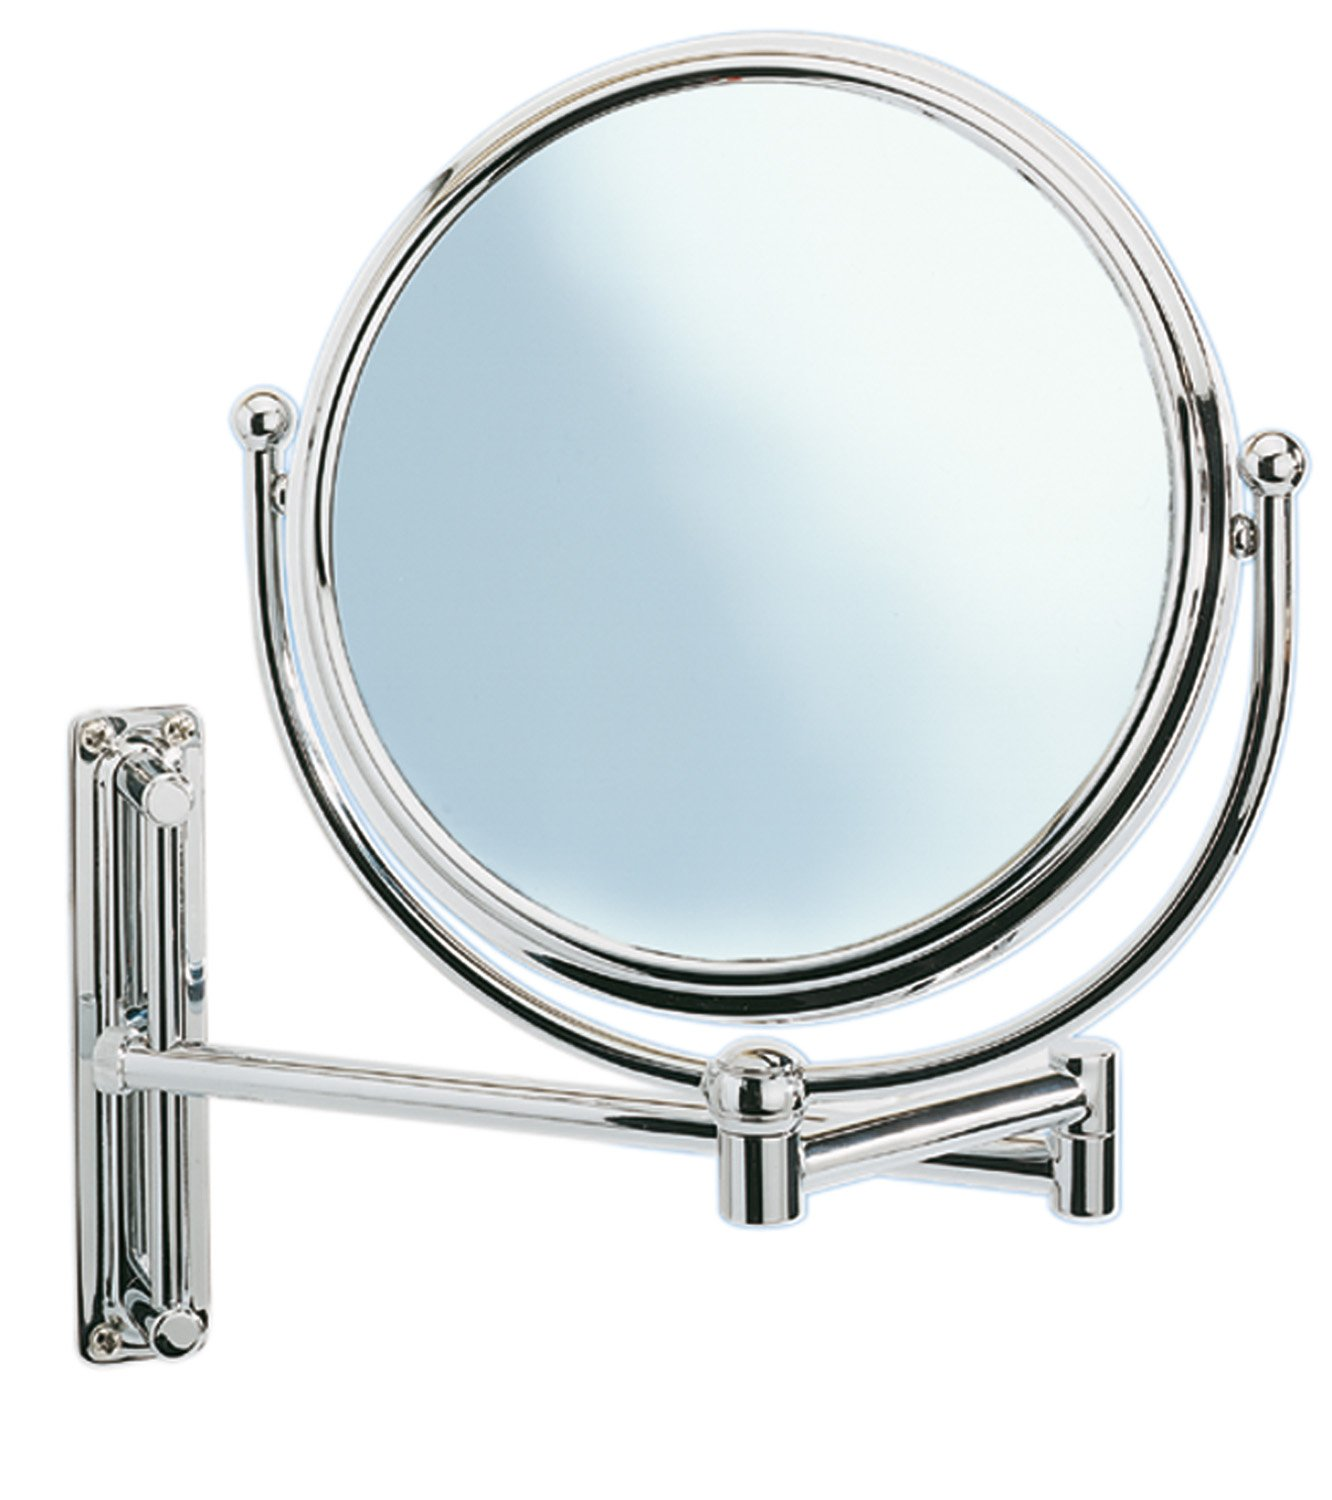 Deluxe Swivelling Arm Cosmetic Wall Mirror, 5-x magnification, Diam 20 cm, Chrome Wenko Wenselaar 3656211100 Gift_Sets Kitchen Accessories